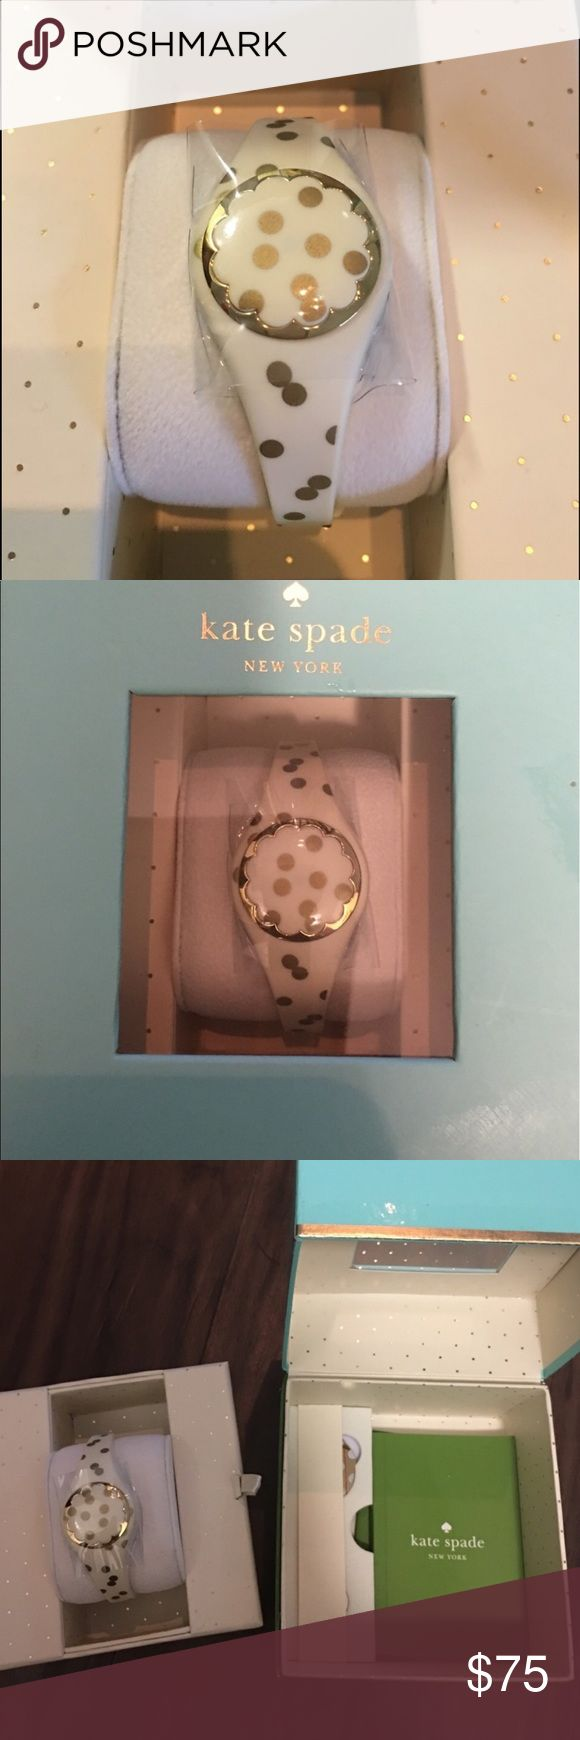 Kate Spade fitness tracker Trendy Kate Spade fitness tracker. Comes with box, batteries and booklet! Compatible with Android and IPhone 5 or higher. Bluetooth smart! kate spade Accessories Watches